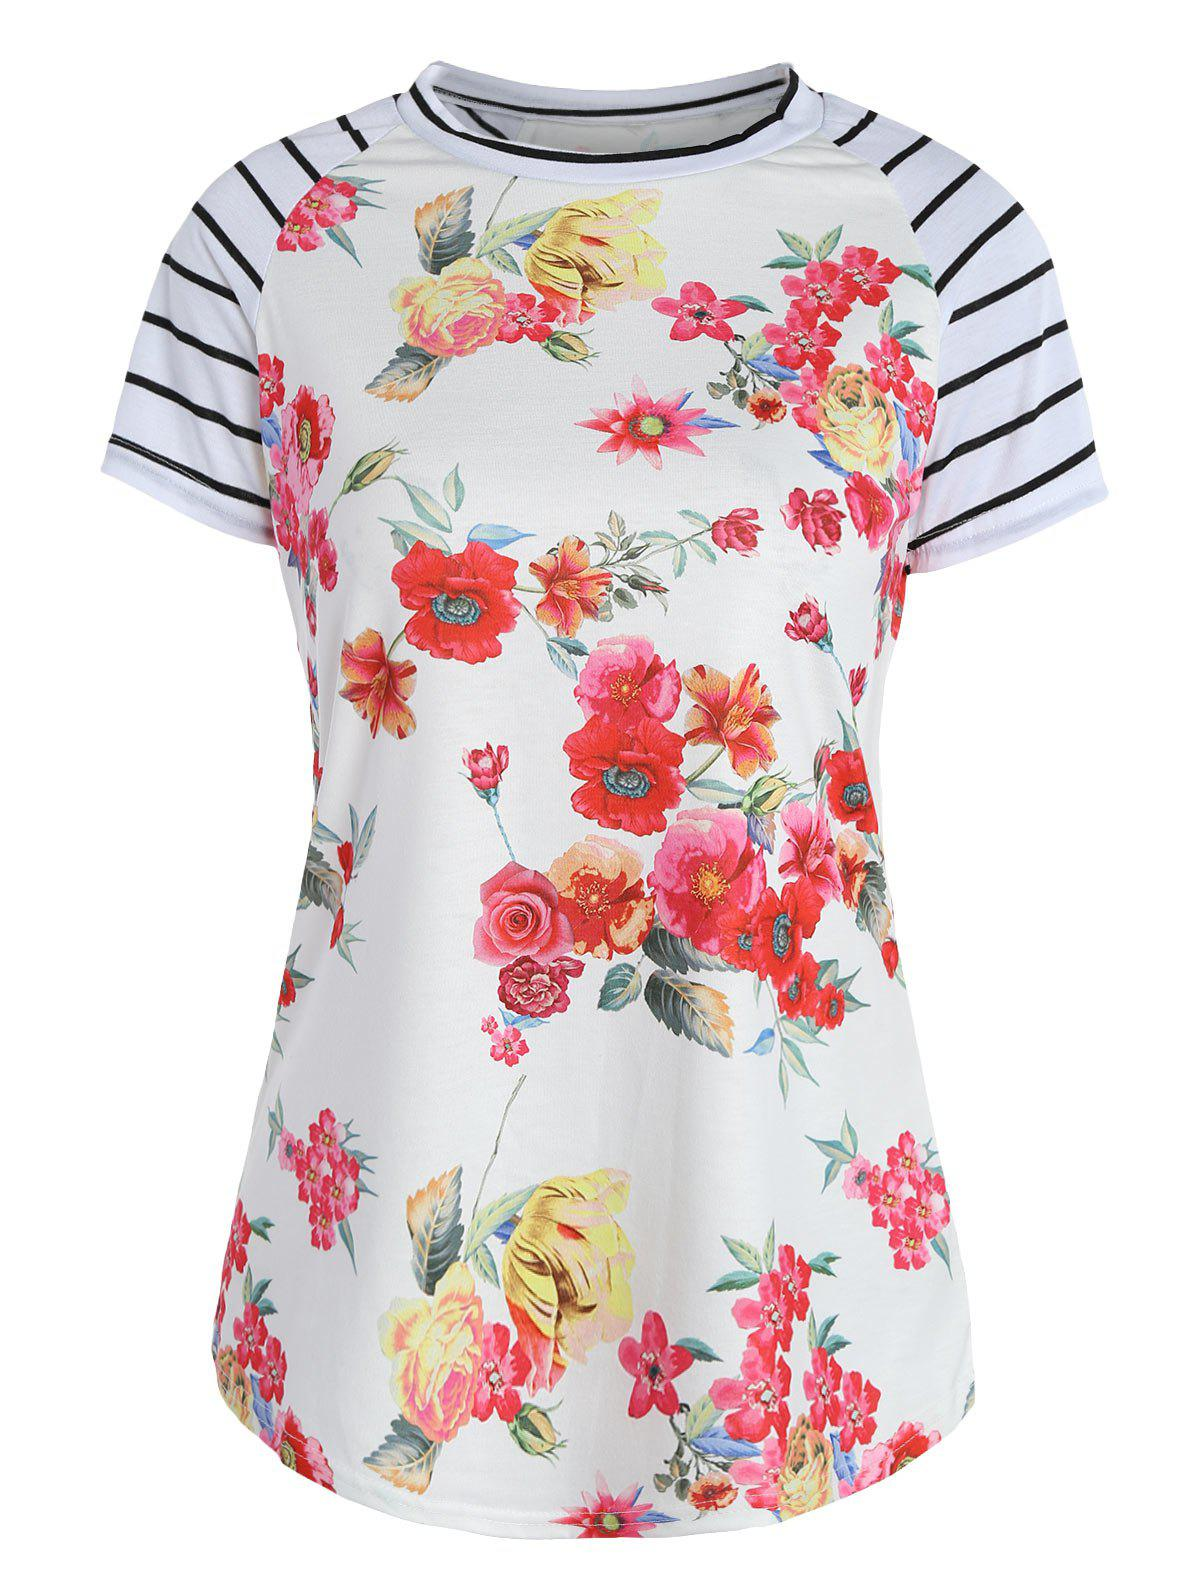 Fancy Stripes Floral Raglan Sleeve Top